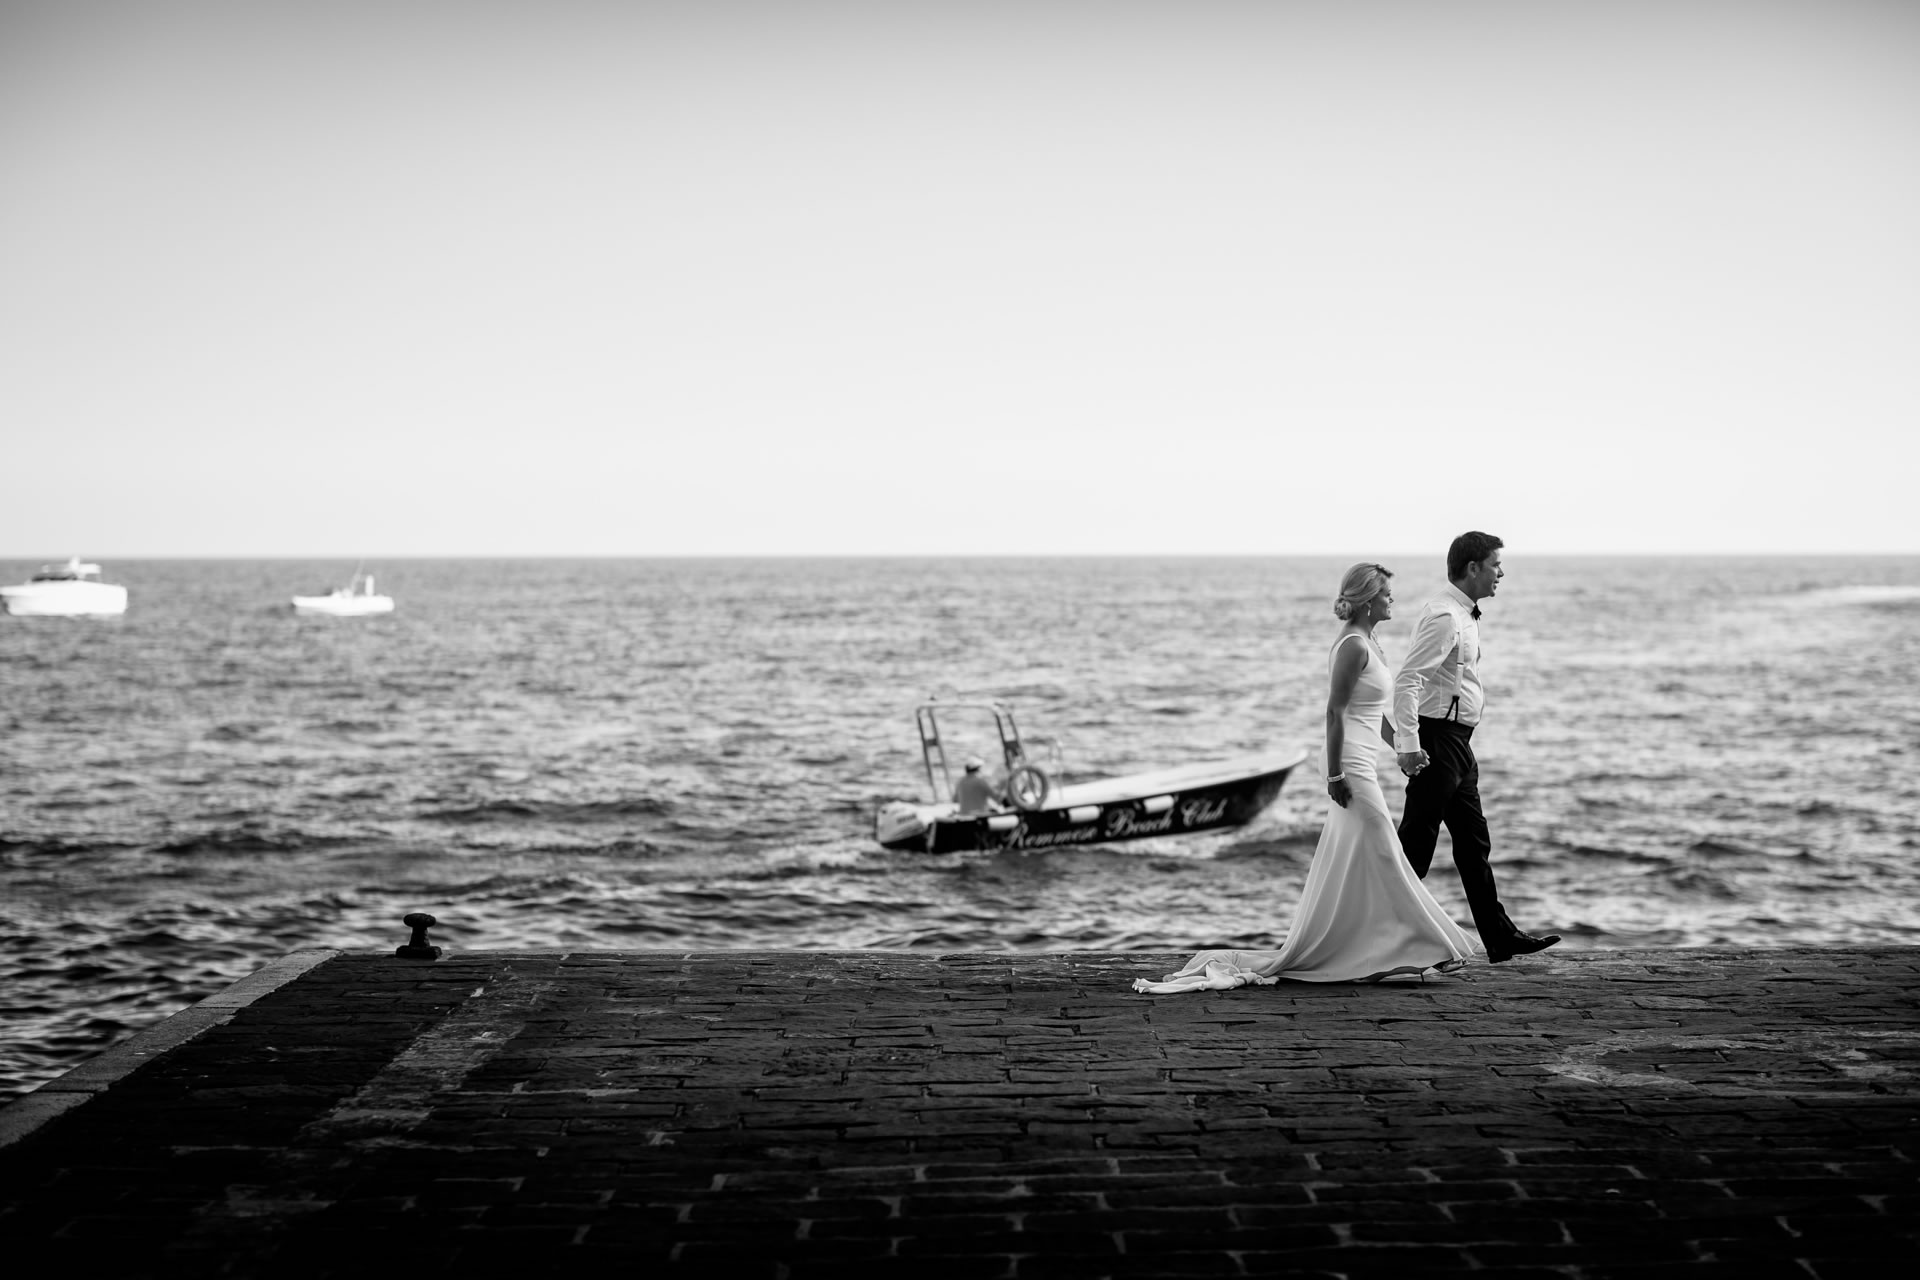 Walk - 44 :: Wedding in Positano. Sea and love :: Luxury wedding photography - 43 :: Walk - 44